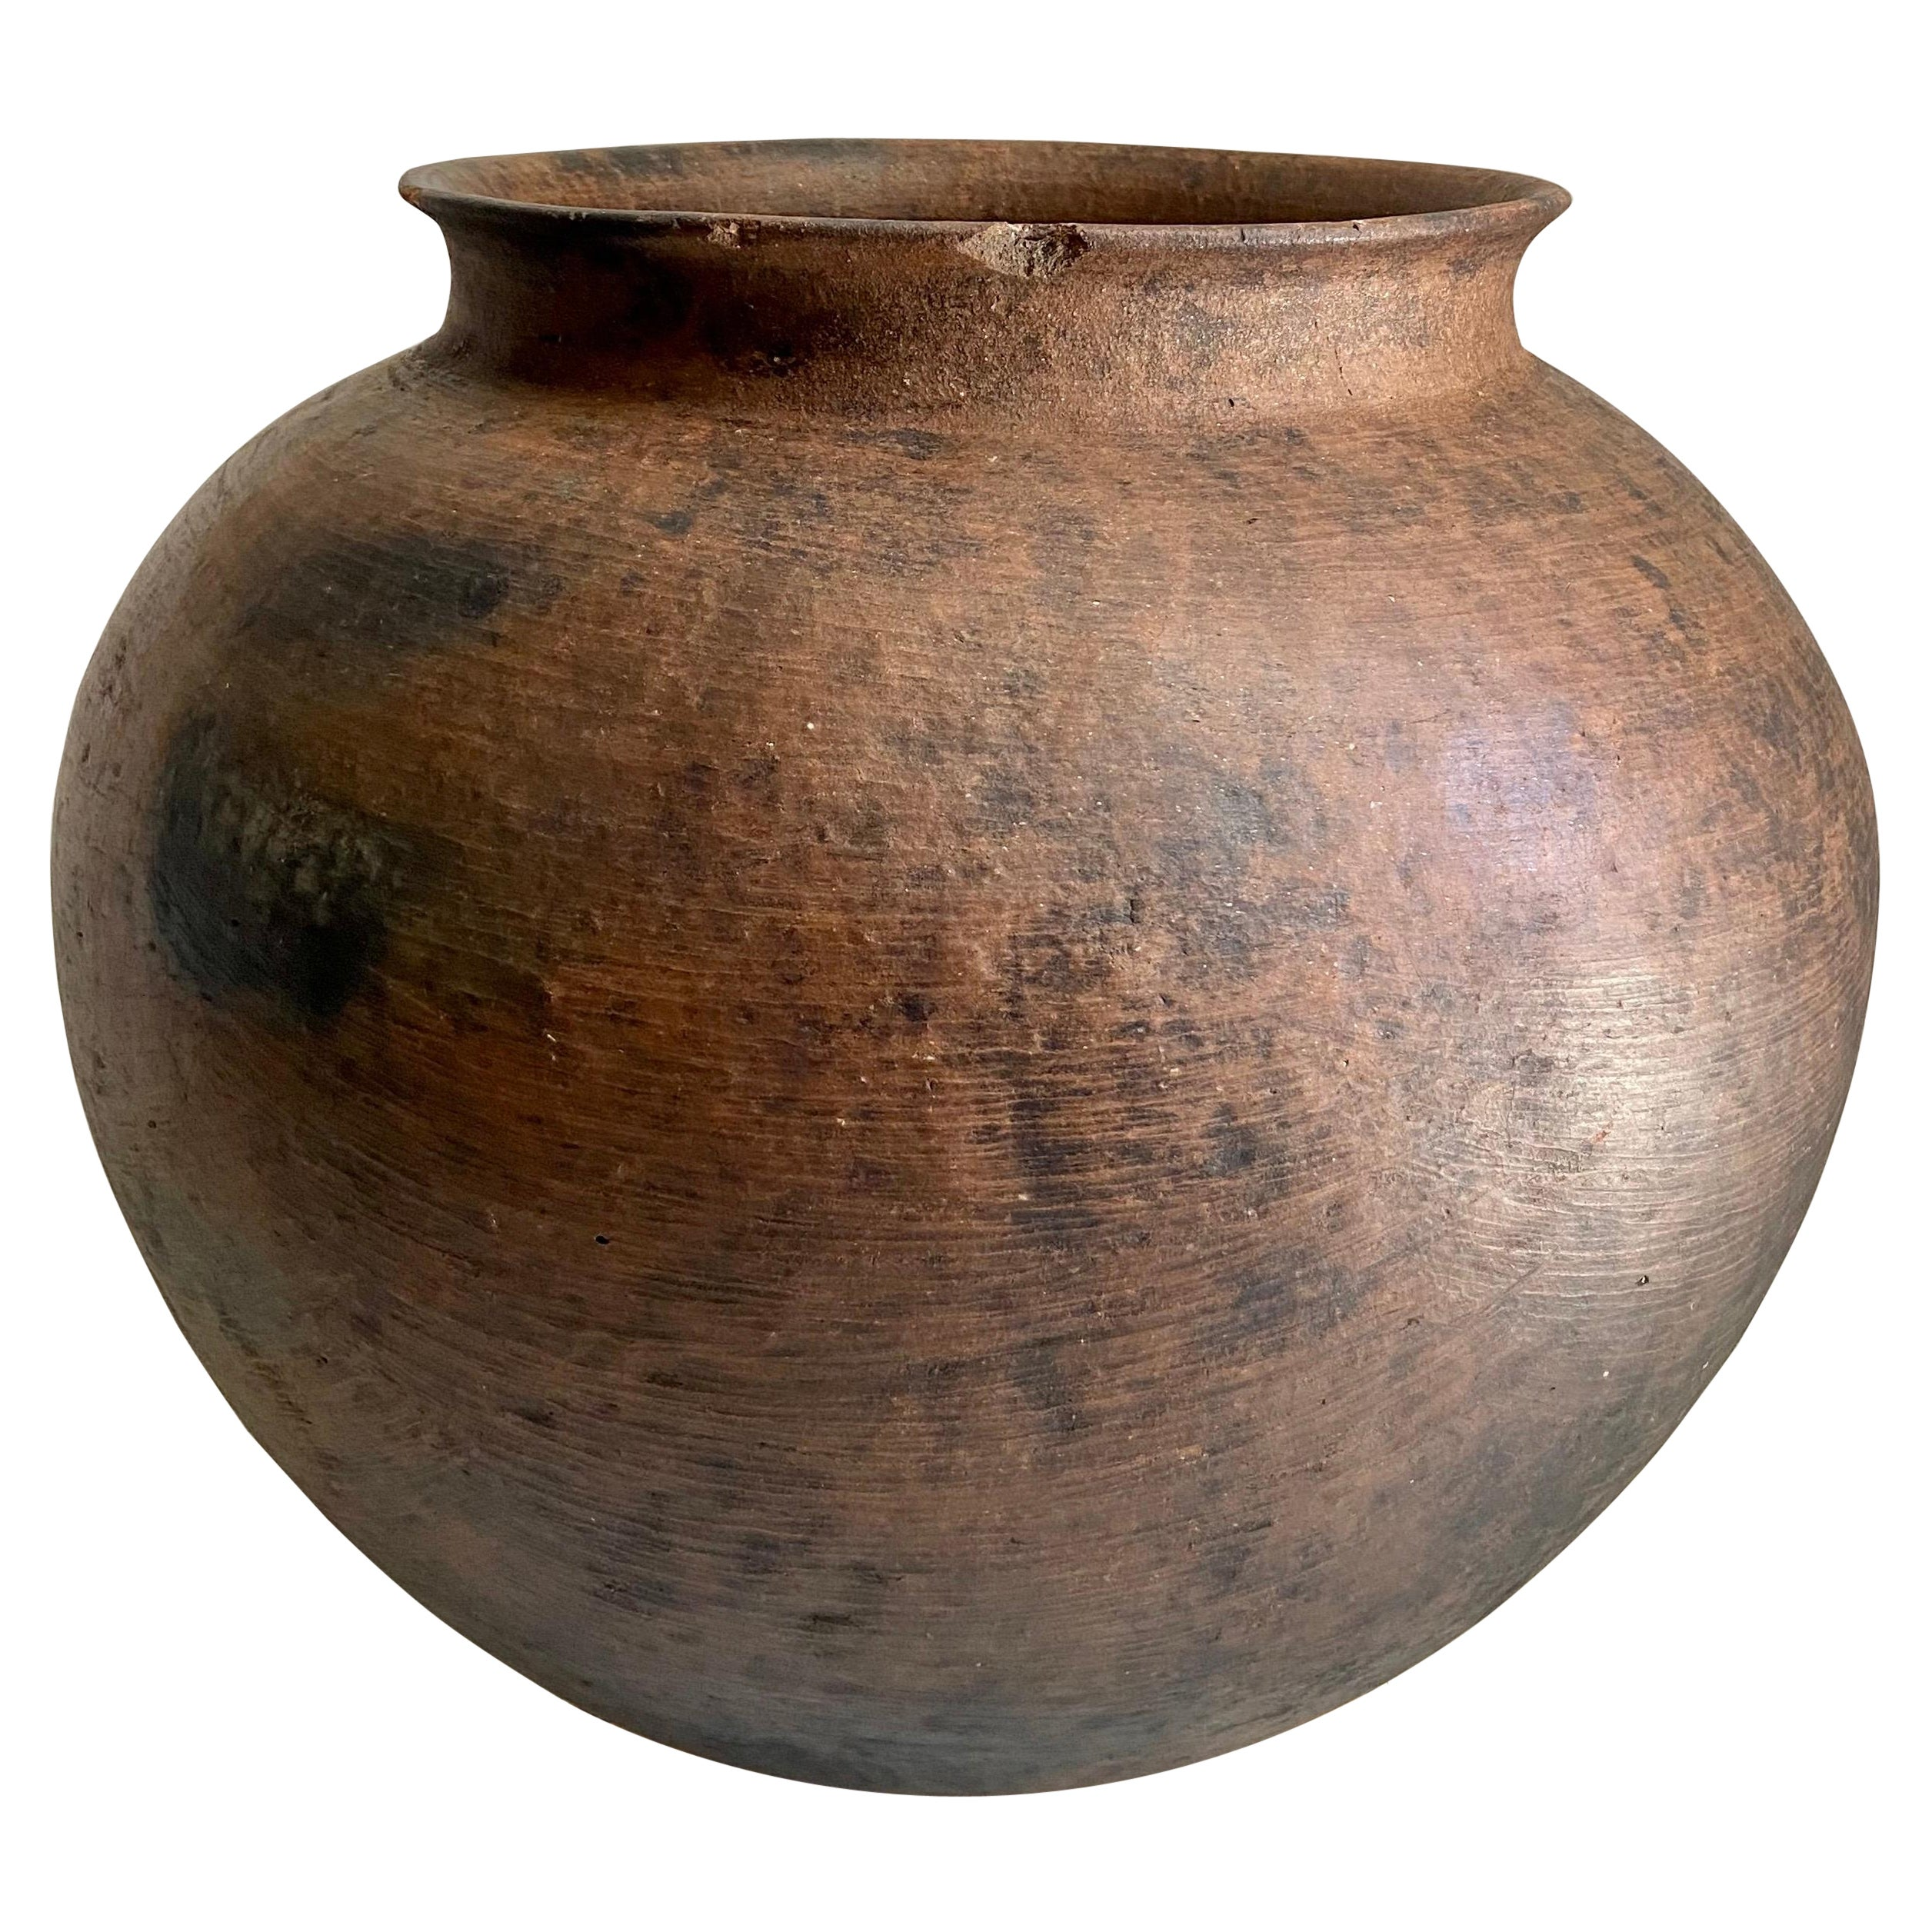 Mid 20th Century Large Water Pot from Mexico